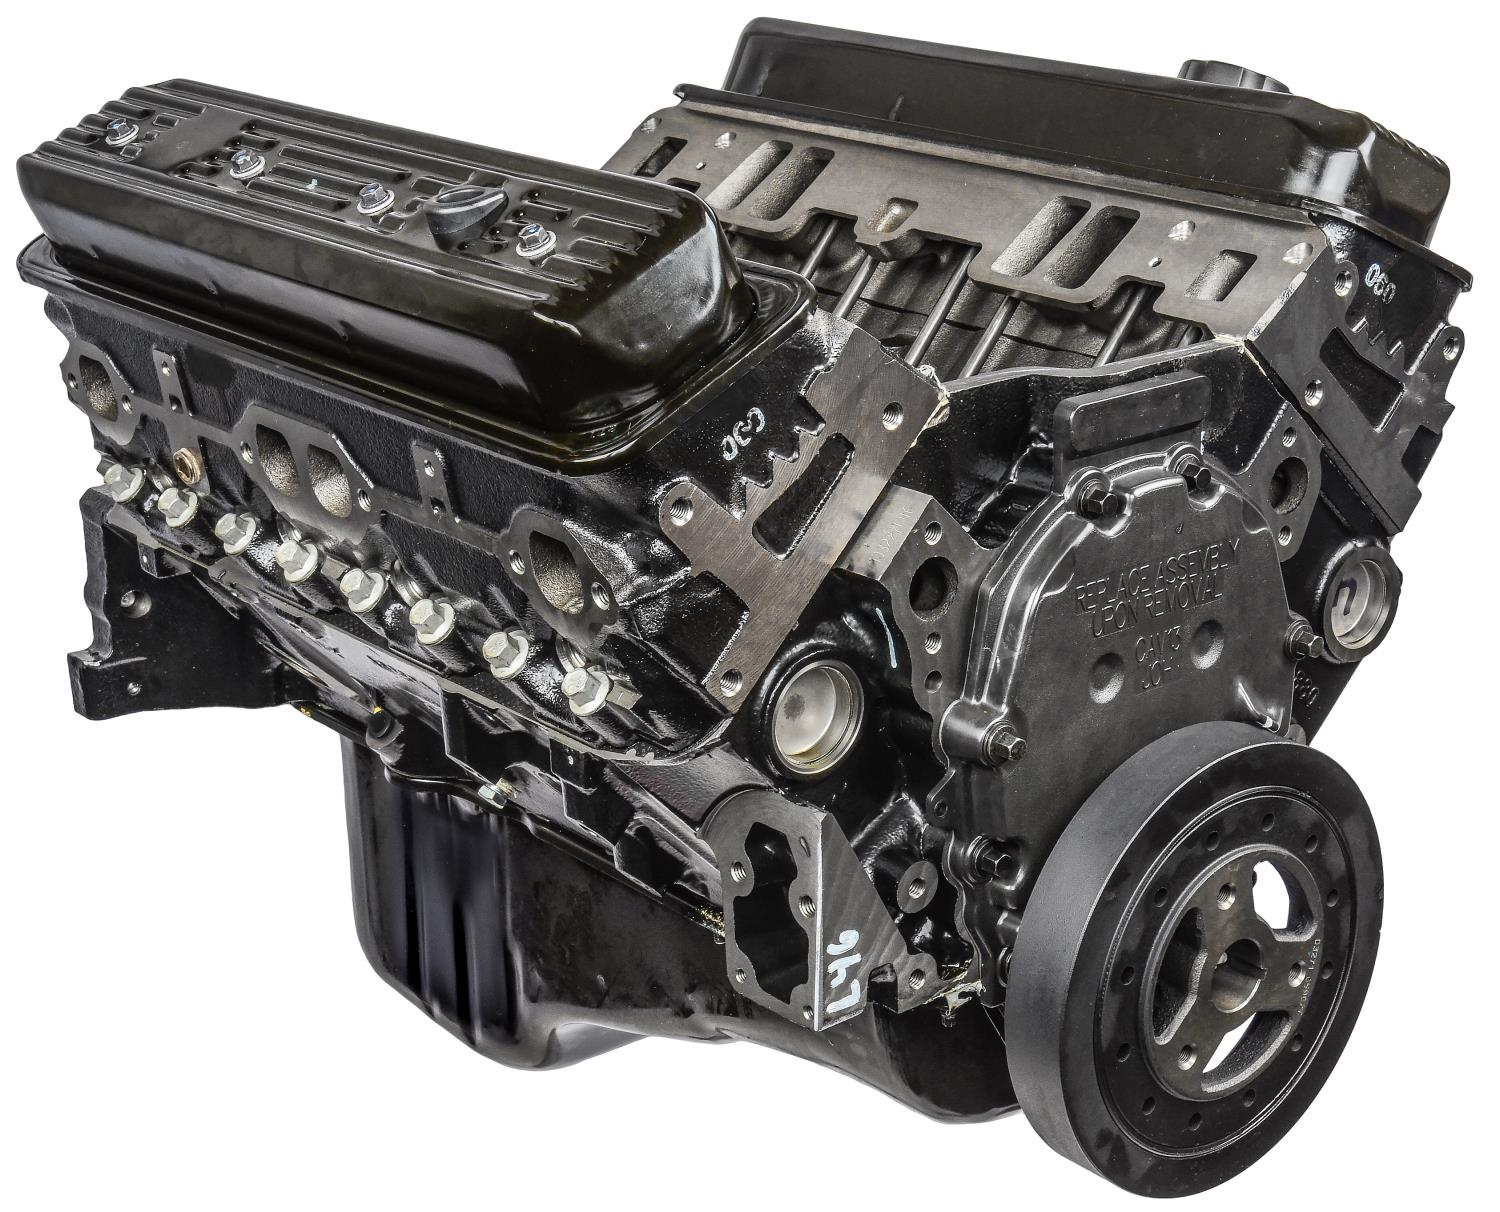 Chevrolet Performance GM 5 7L 350 Long Block Cast Iron Truck Engine  1996-2002 Chevy/GMC Truck/SUV/Van